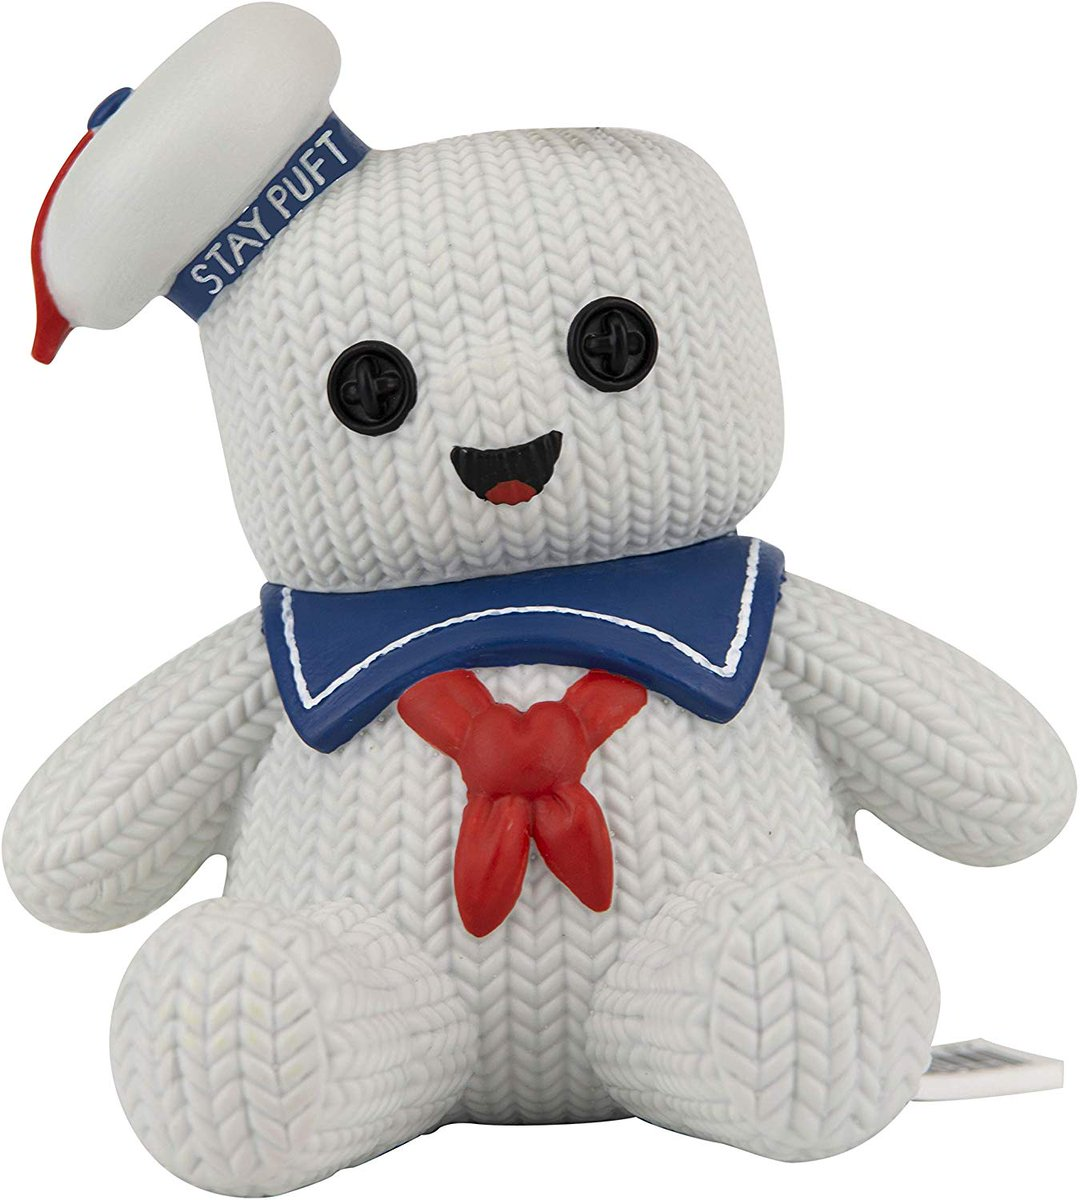 Ghostbusters - Stay Puft Handmade By Robots Vinyl Figure se pone a 283 pesos amzn.to/38DRSNo